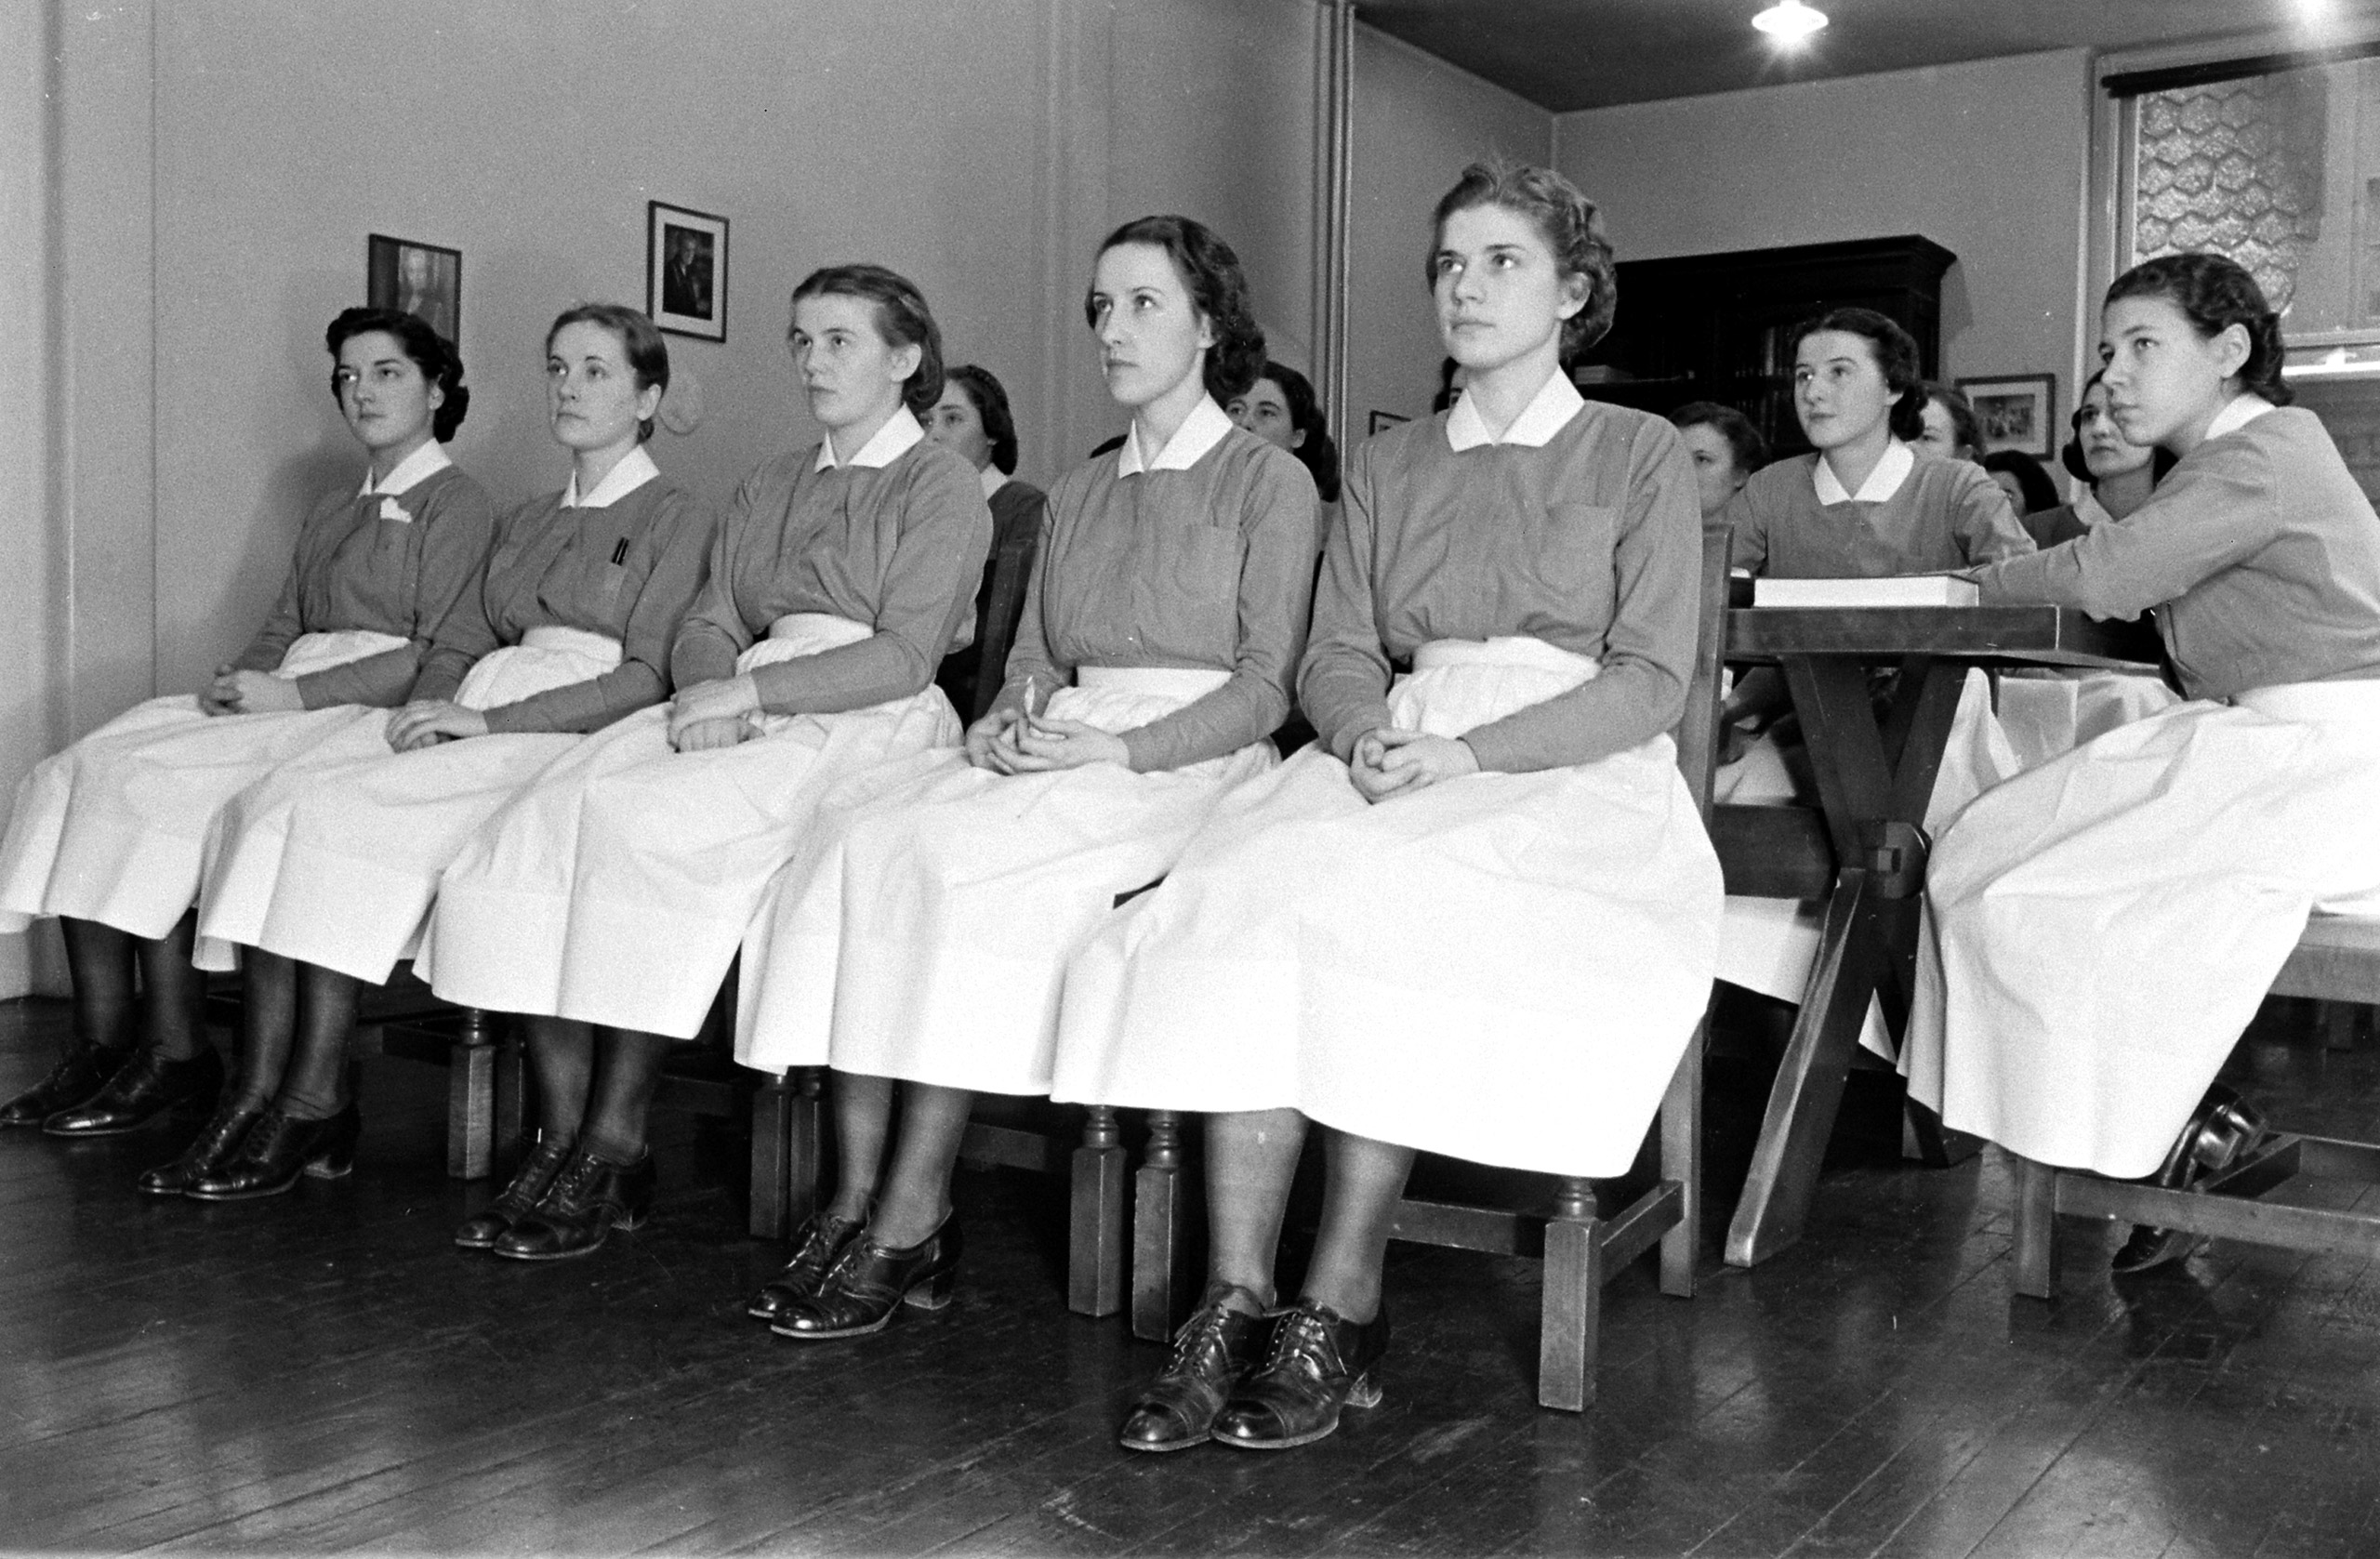 <b>Caption from LIFE.</b> The first two weeks see the new nurse inducted into the ethics of her profession. She listens to talks on life in New York, on living with a group, on the problems of hospital administration. At first she has to buy her own blue uniform, black stockings and low-heeled shoes. After she has been capped, the hospital supplies the uniform.